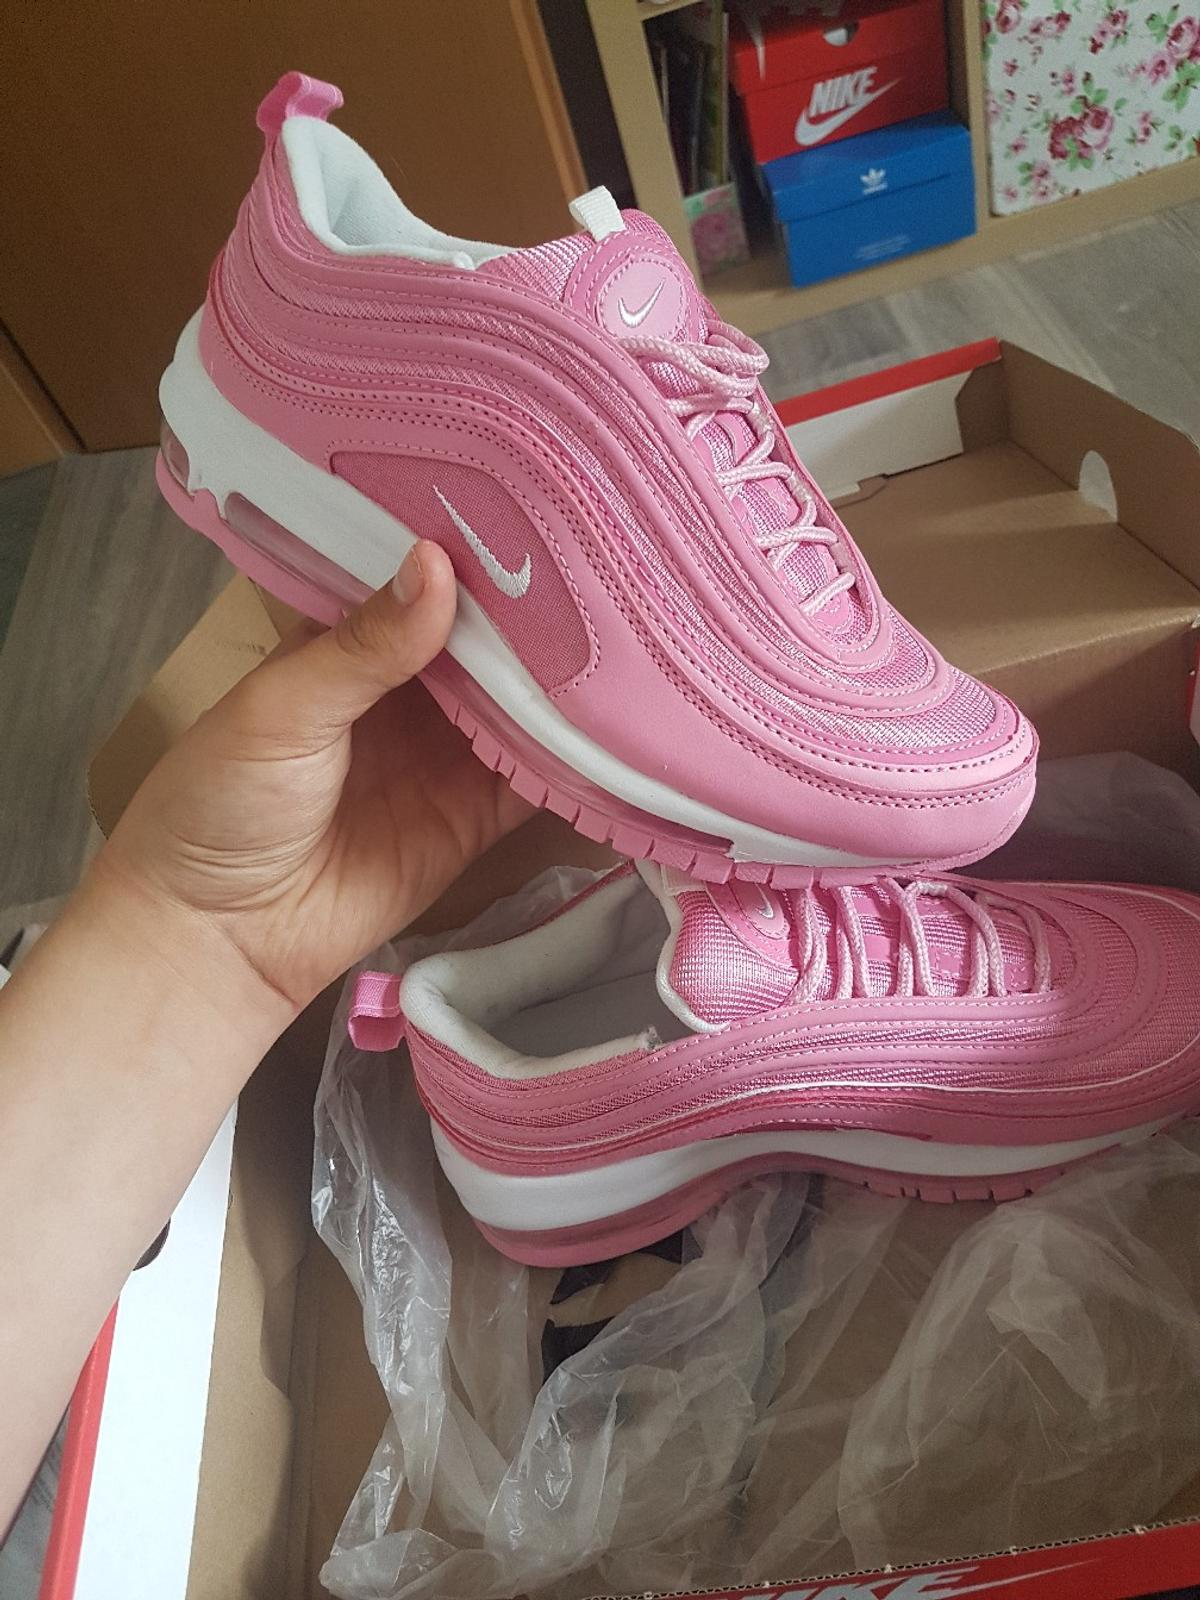 Max in for Frücht 00 97 56132 in Pink Air €100 for sale Nike wn0OPk